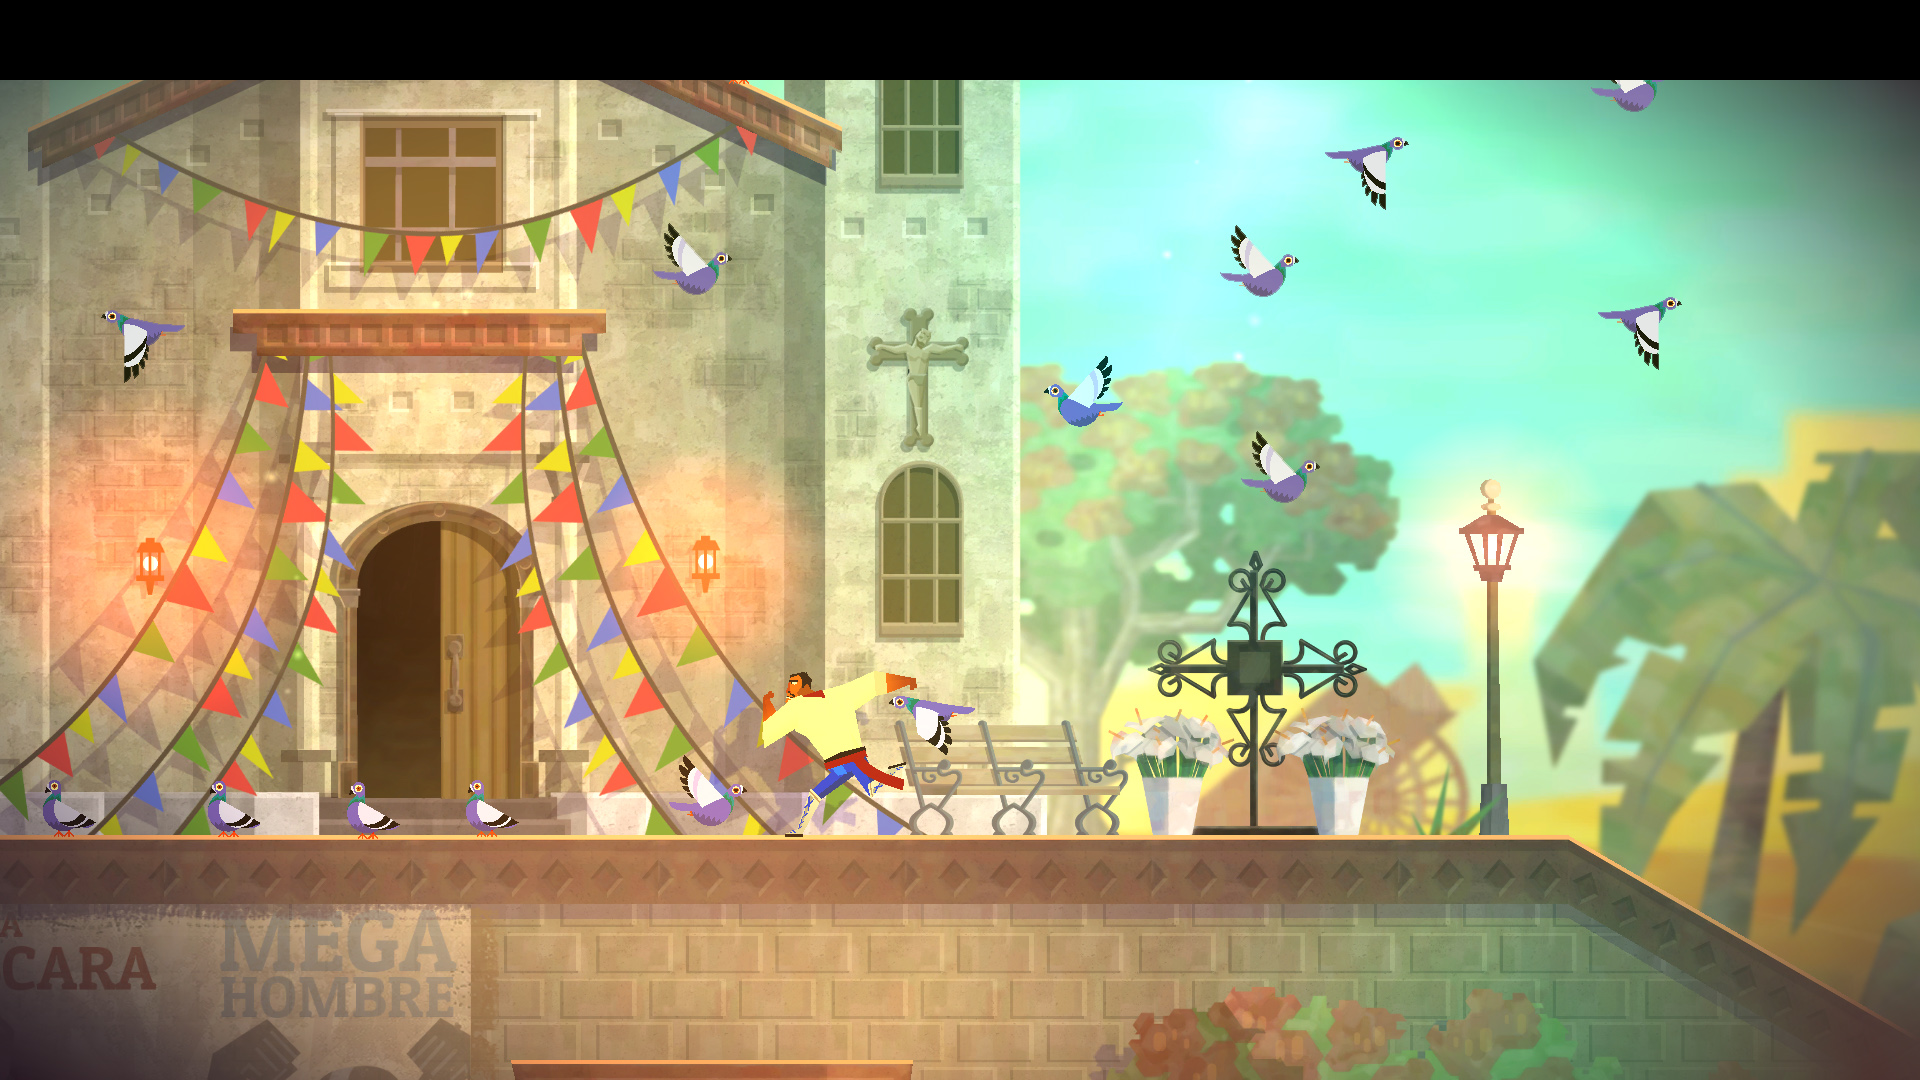 Guacamelee, BattleBlock Theater and more go free on Xbox Live Gold in July